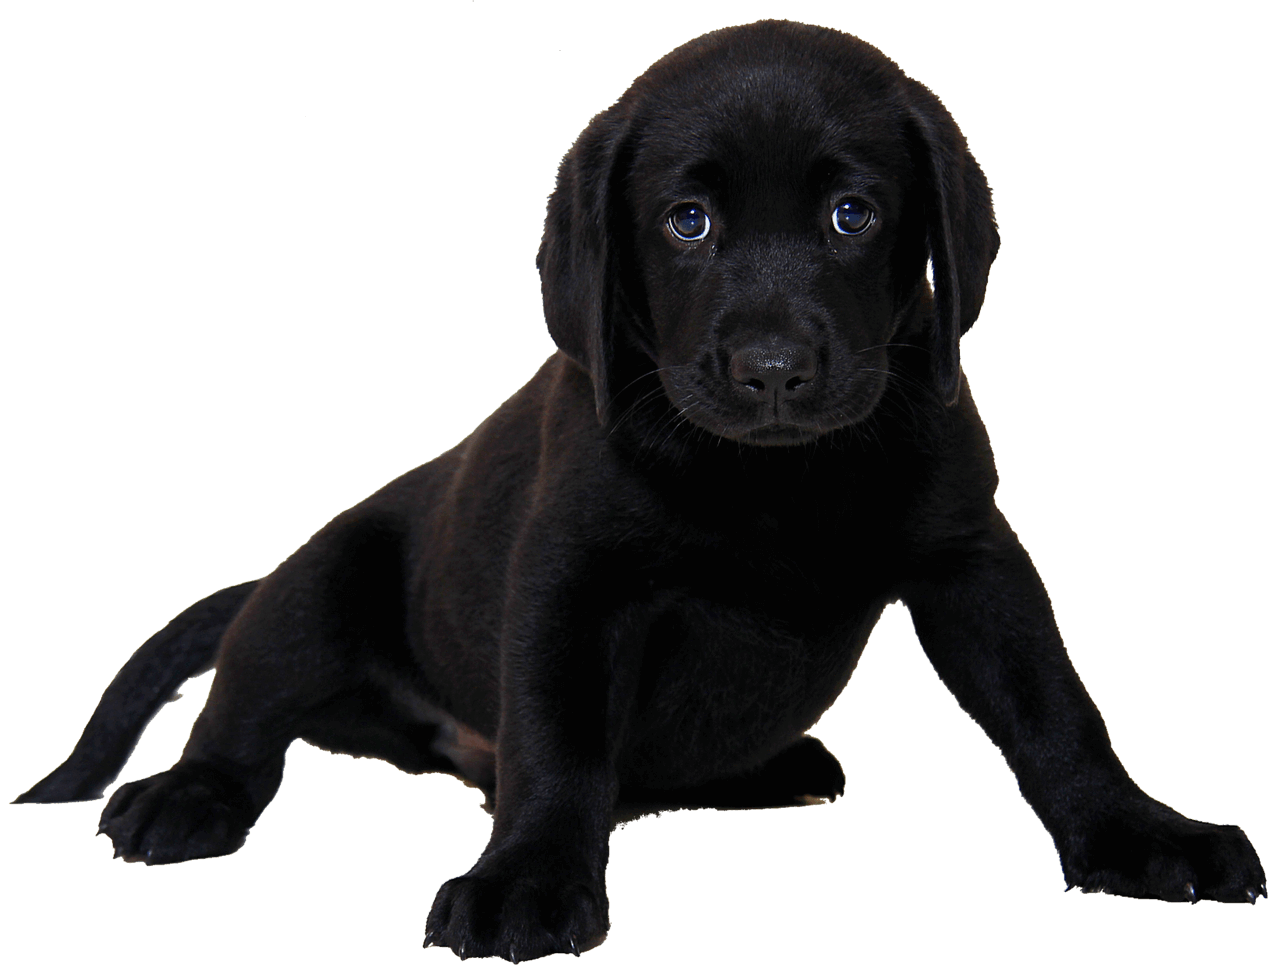 When Do Labrador Puppies Lose Their Teeth?